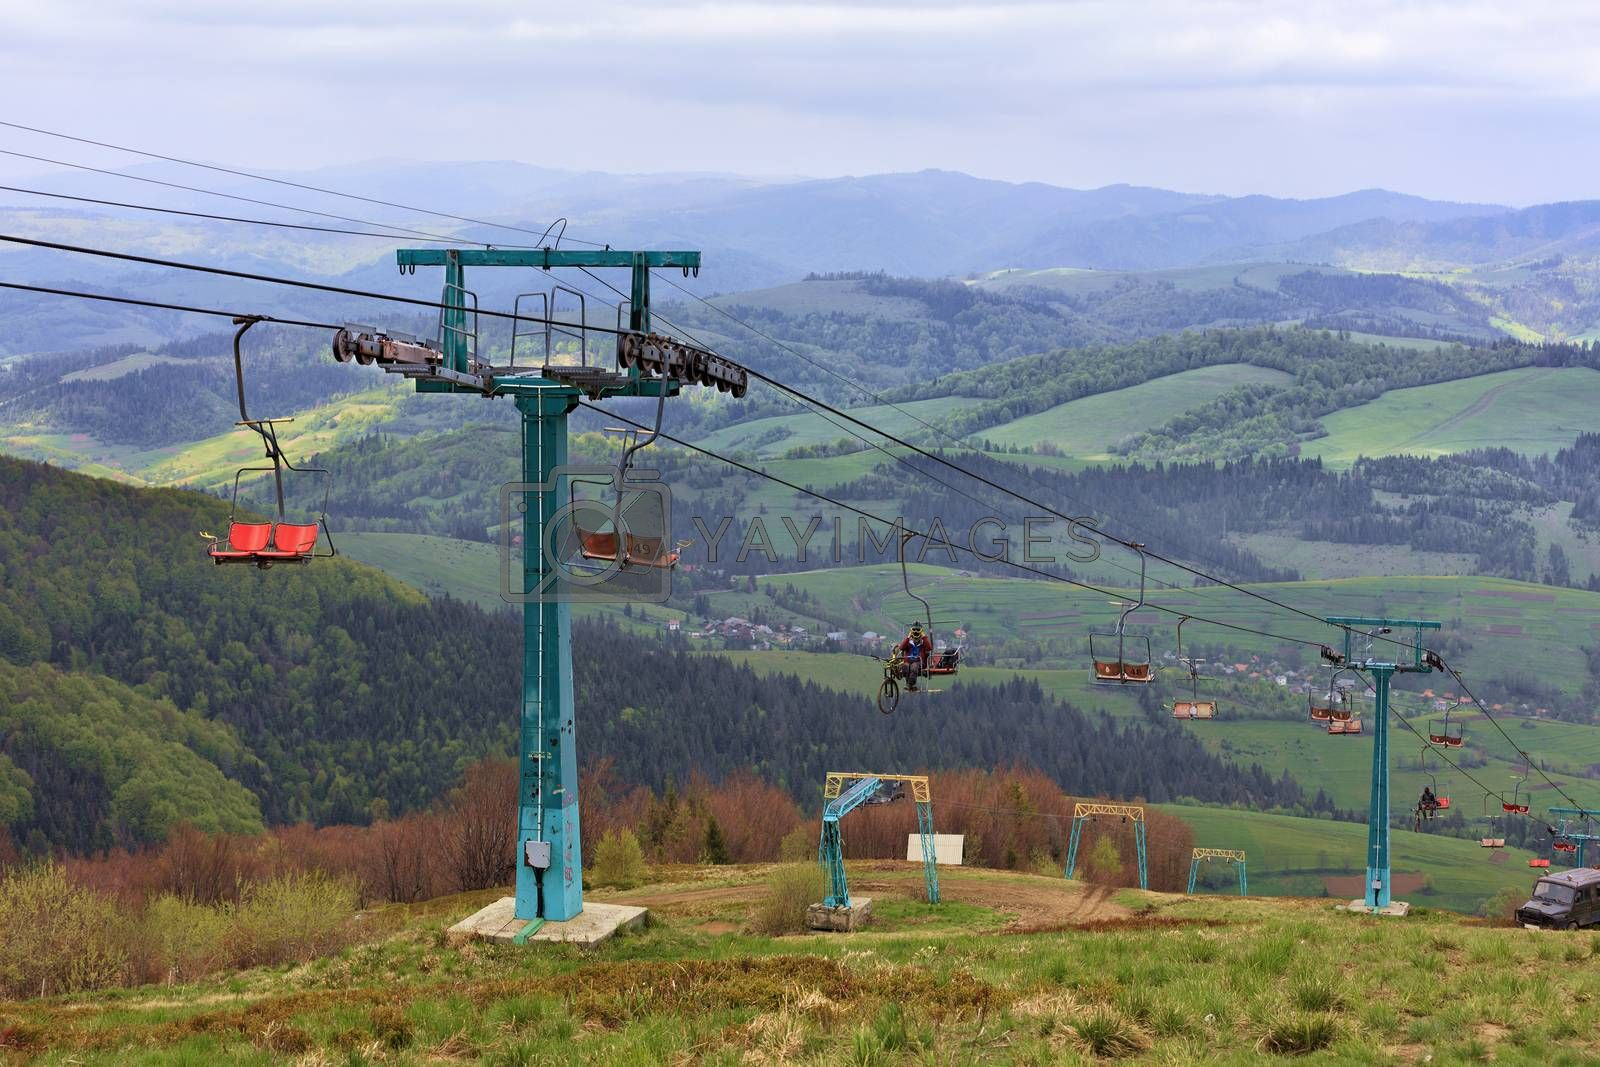 The ski-lift carries tourists and athletes up and down the mountains against the backdrop of the summer mountain scenery in the Carpathians